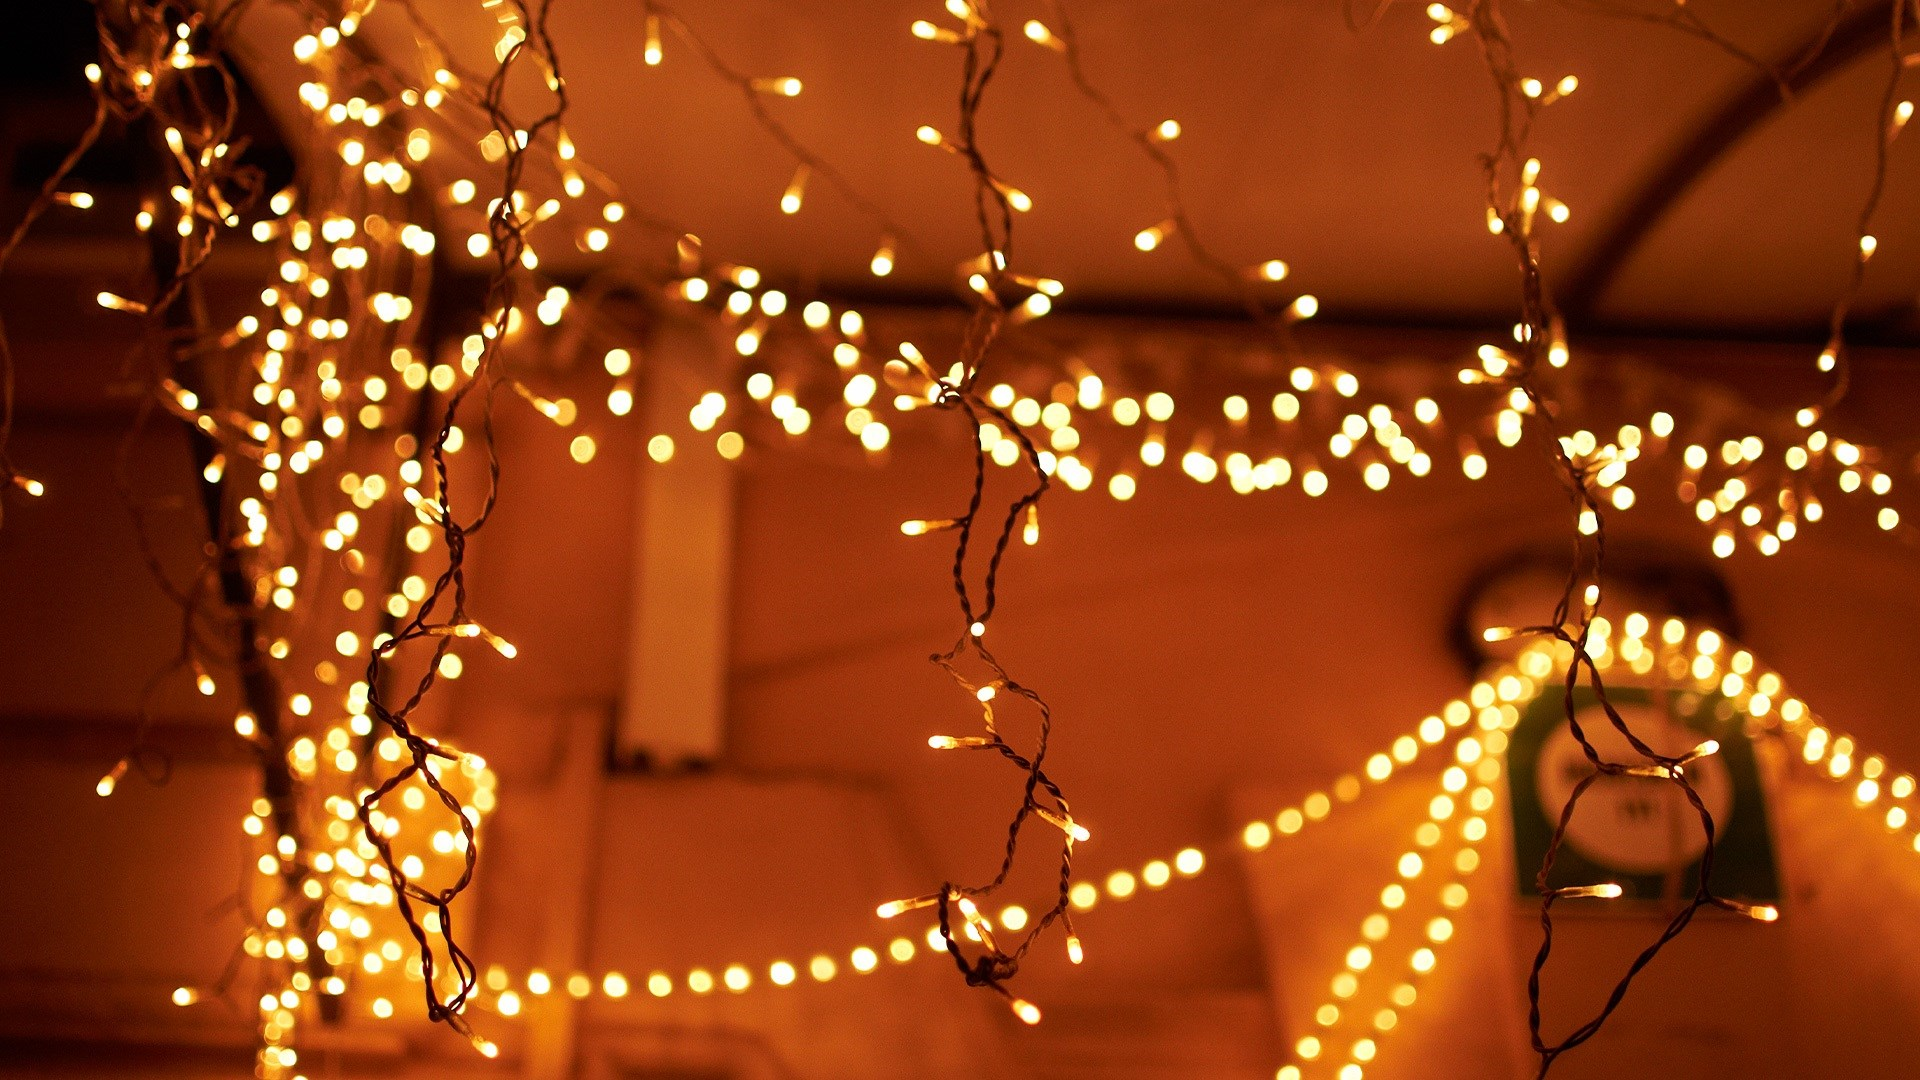 christmas lights clips wallpaper - photo #29